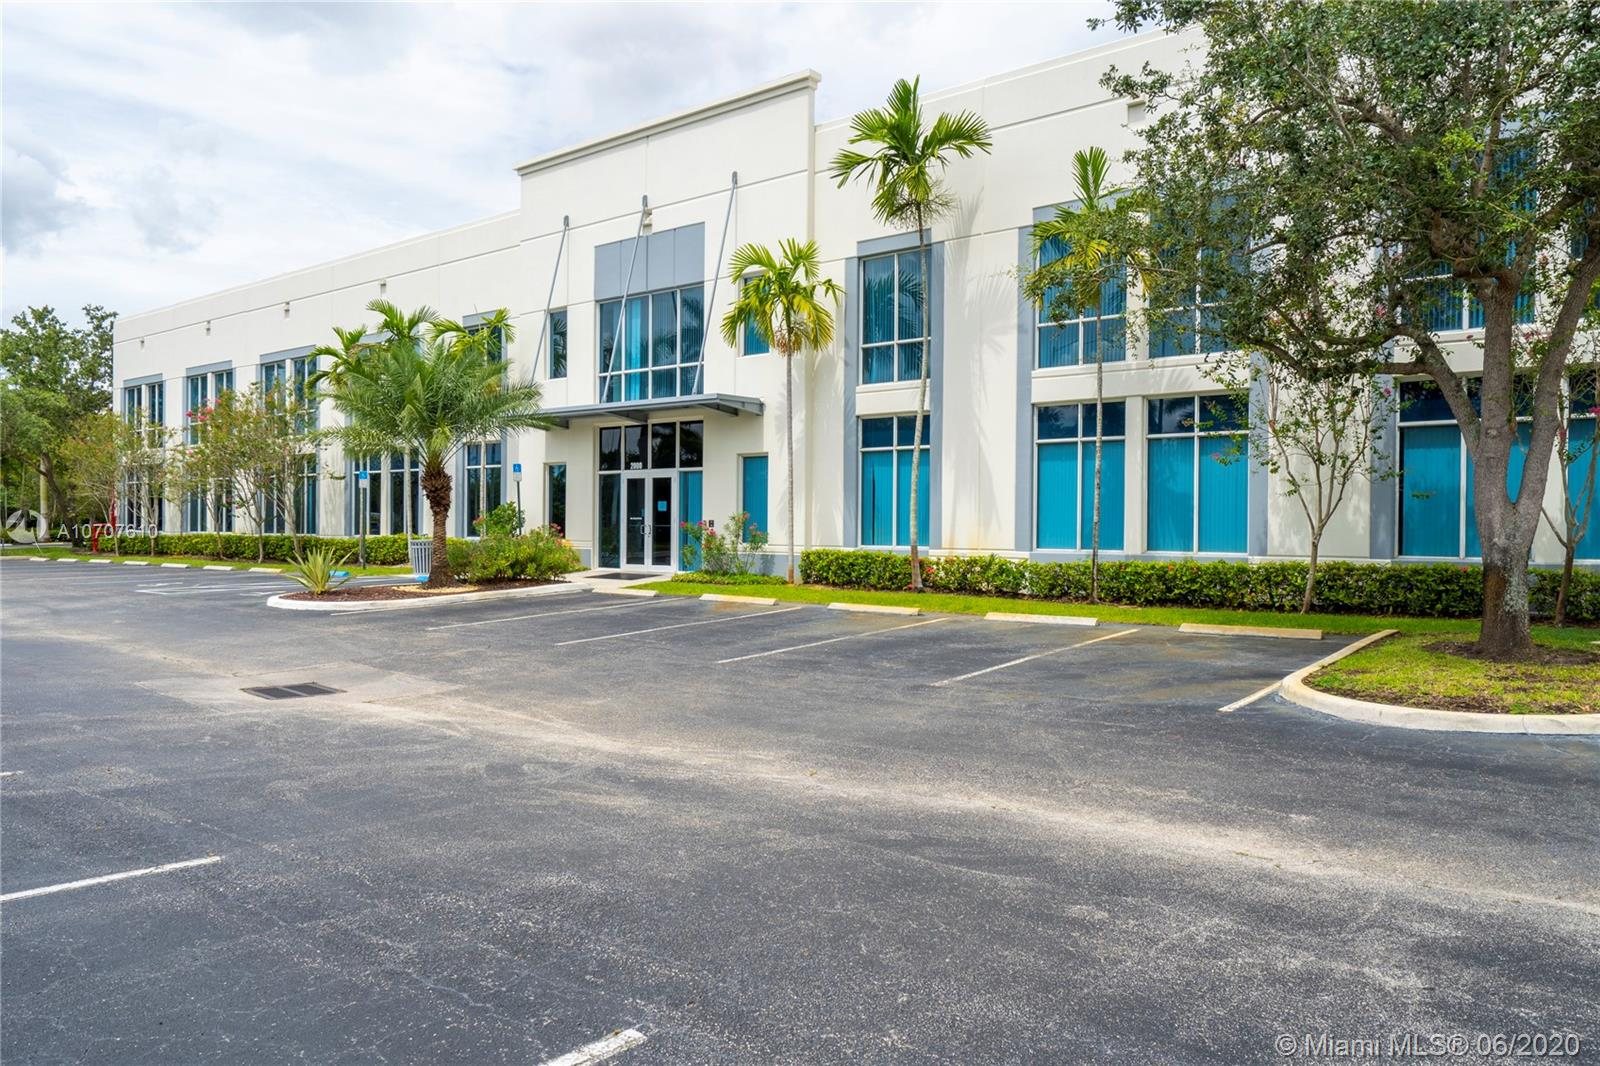 2000 NW 150th Ave # A, Pembroke Pines, Florida 33028, ,Commercial Sale,For Sale,2000 NW 150th Ave # A,A10707610